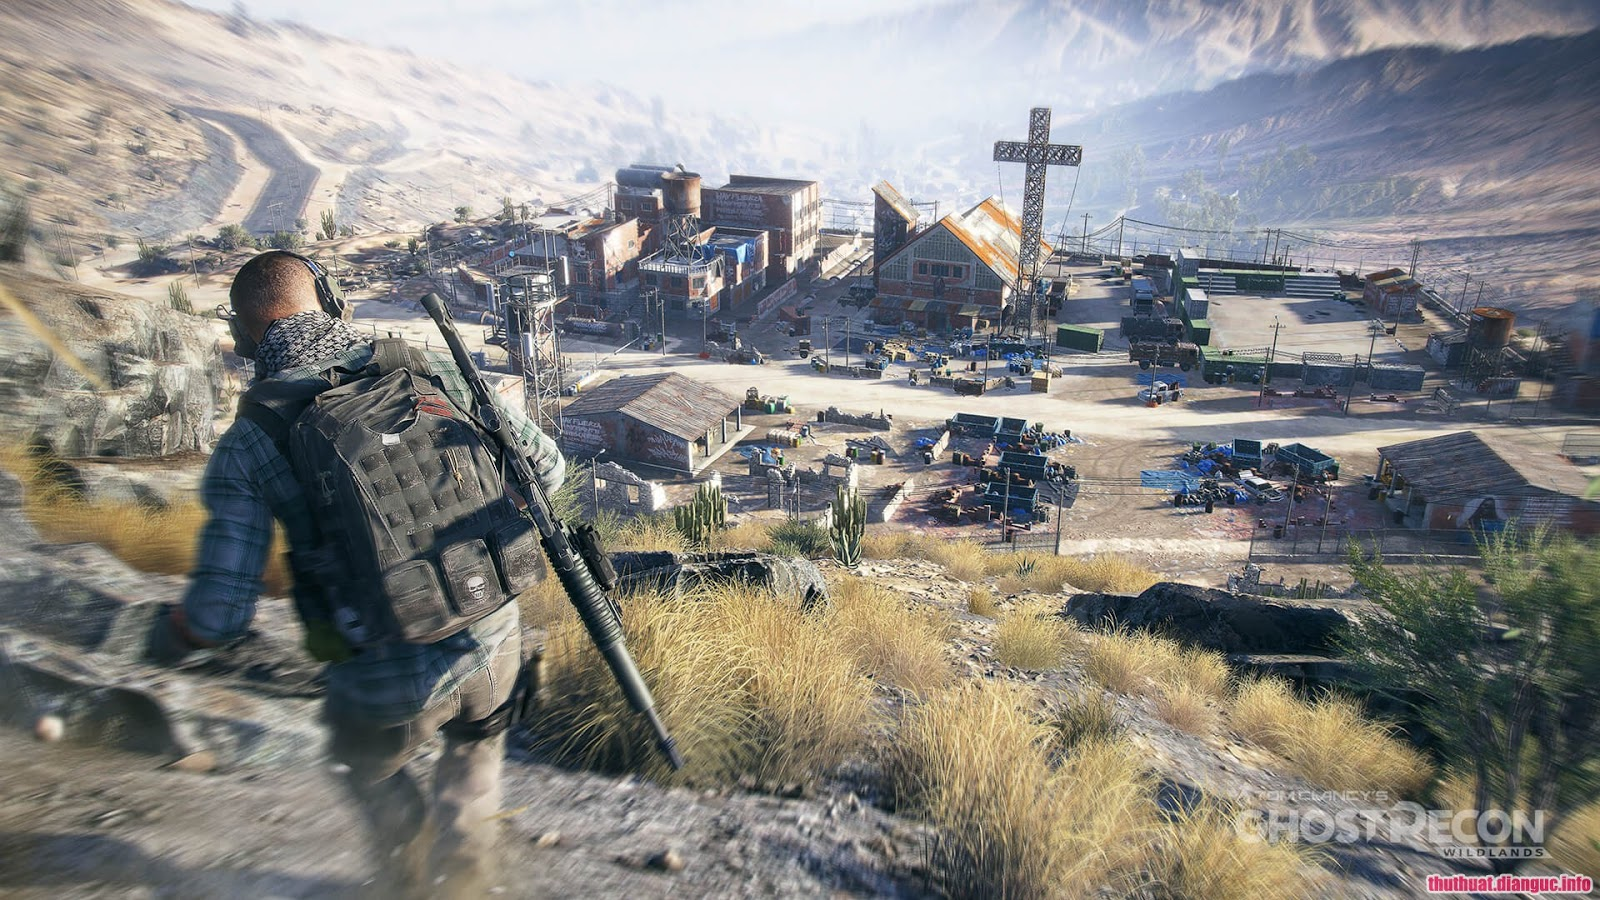 Download Game Tom Clancy's Ghost Recon® Wildlands Full Crack, Tom Clancy's Ghost Recon® Wildlands, Tom Clancy's Ghost Recon® Wildlands free download, Tom Clancy's Ghost Recon® Wildlands full crack